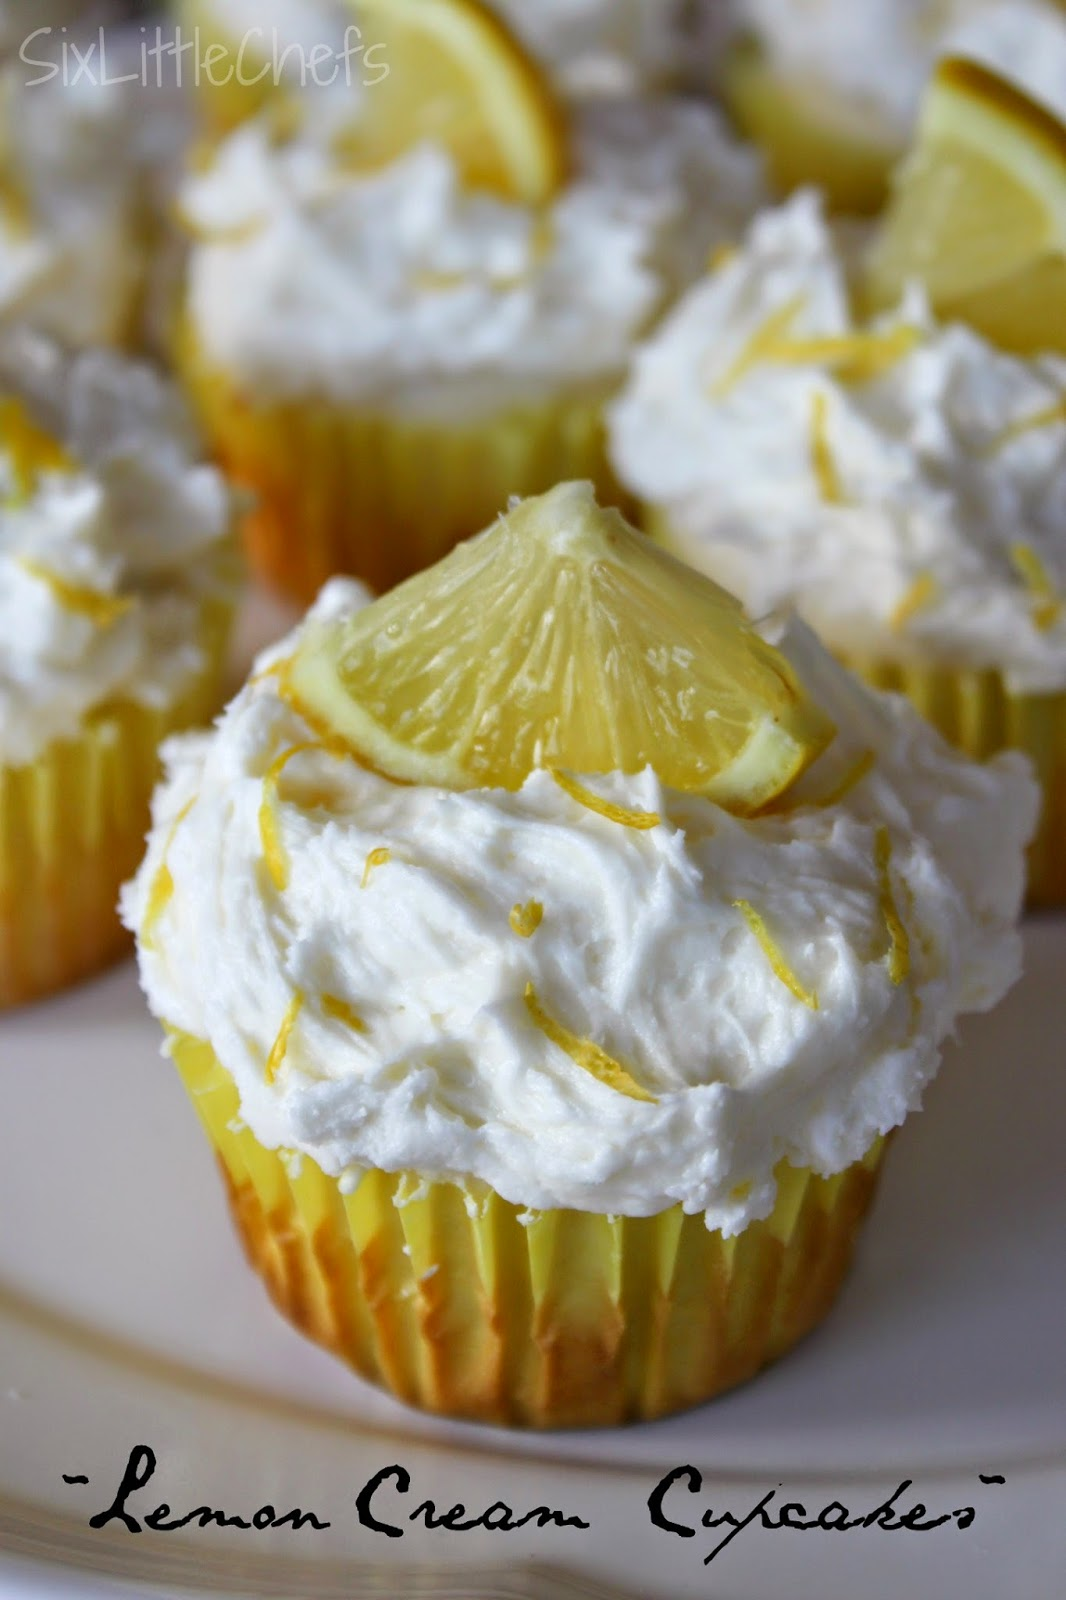 Six Little Chefs: Lemon Cream Cupcakes